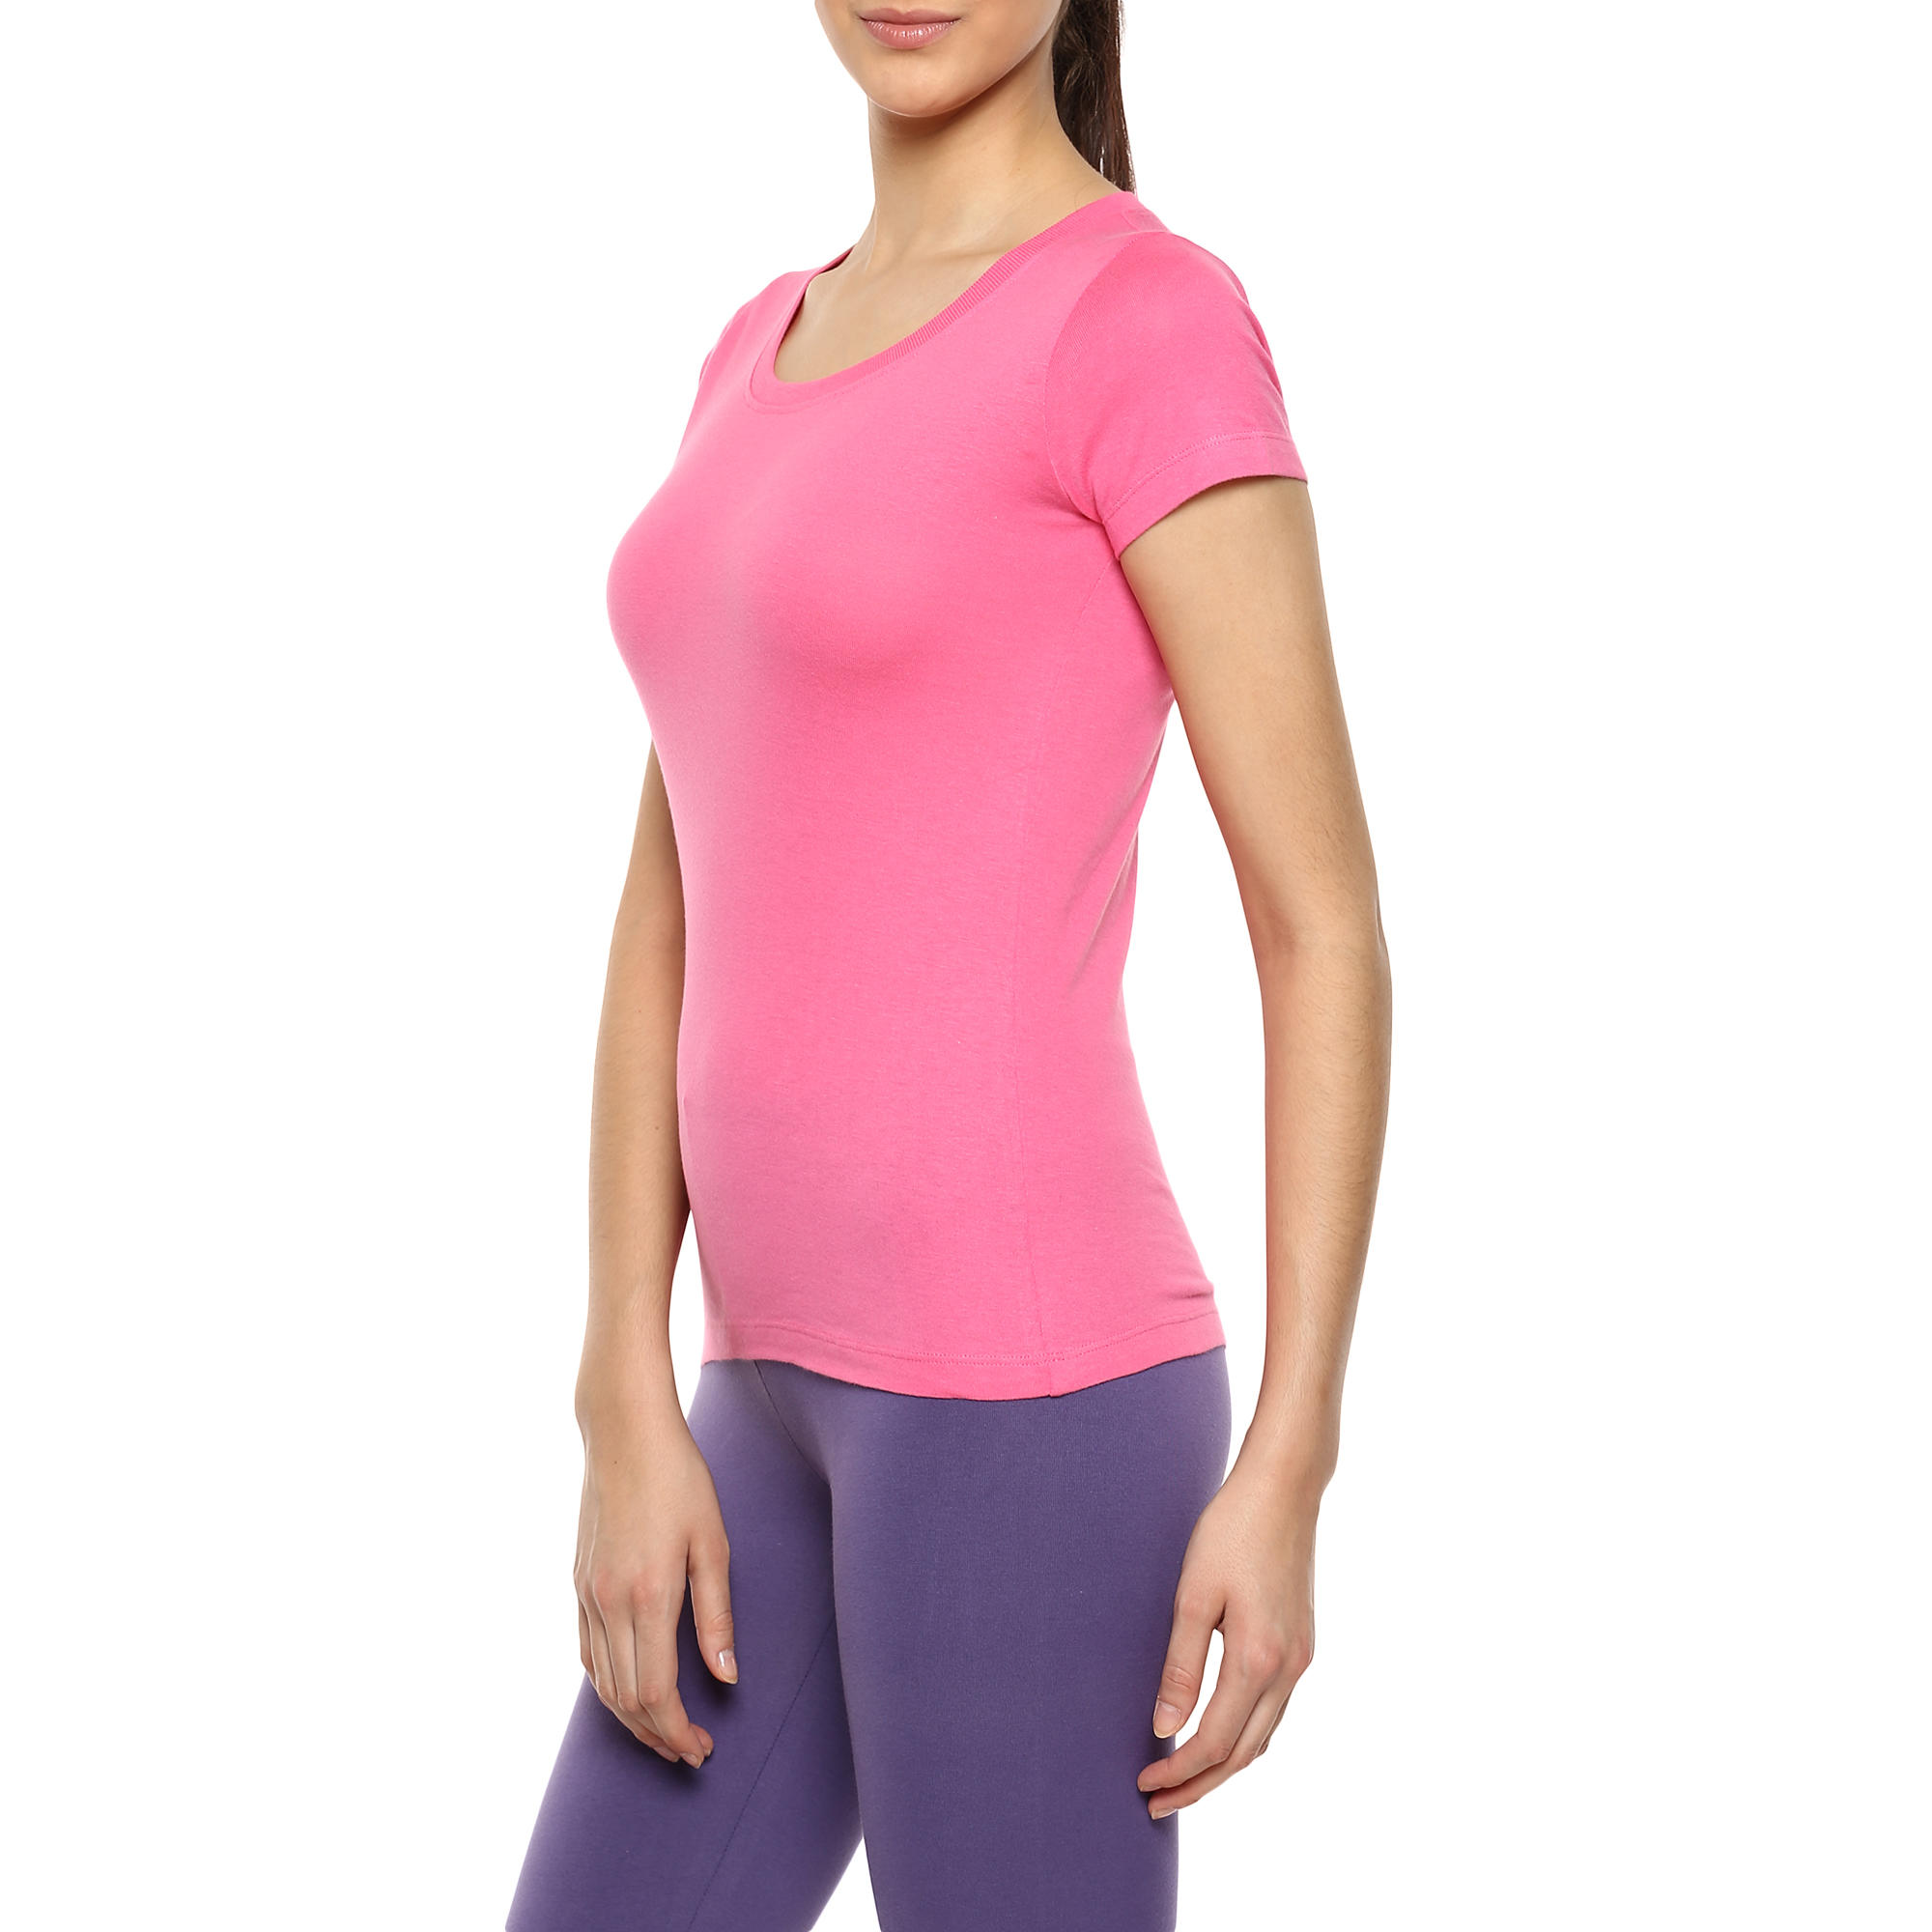 WOMEN SPORTEE FITNESS ESSENTIAL T-SHIRT GIRLY PINK